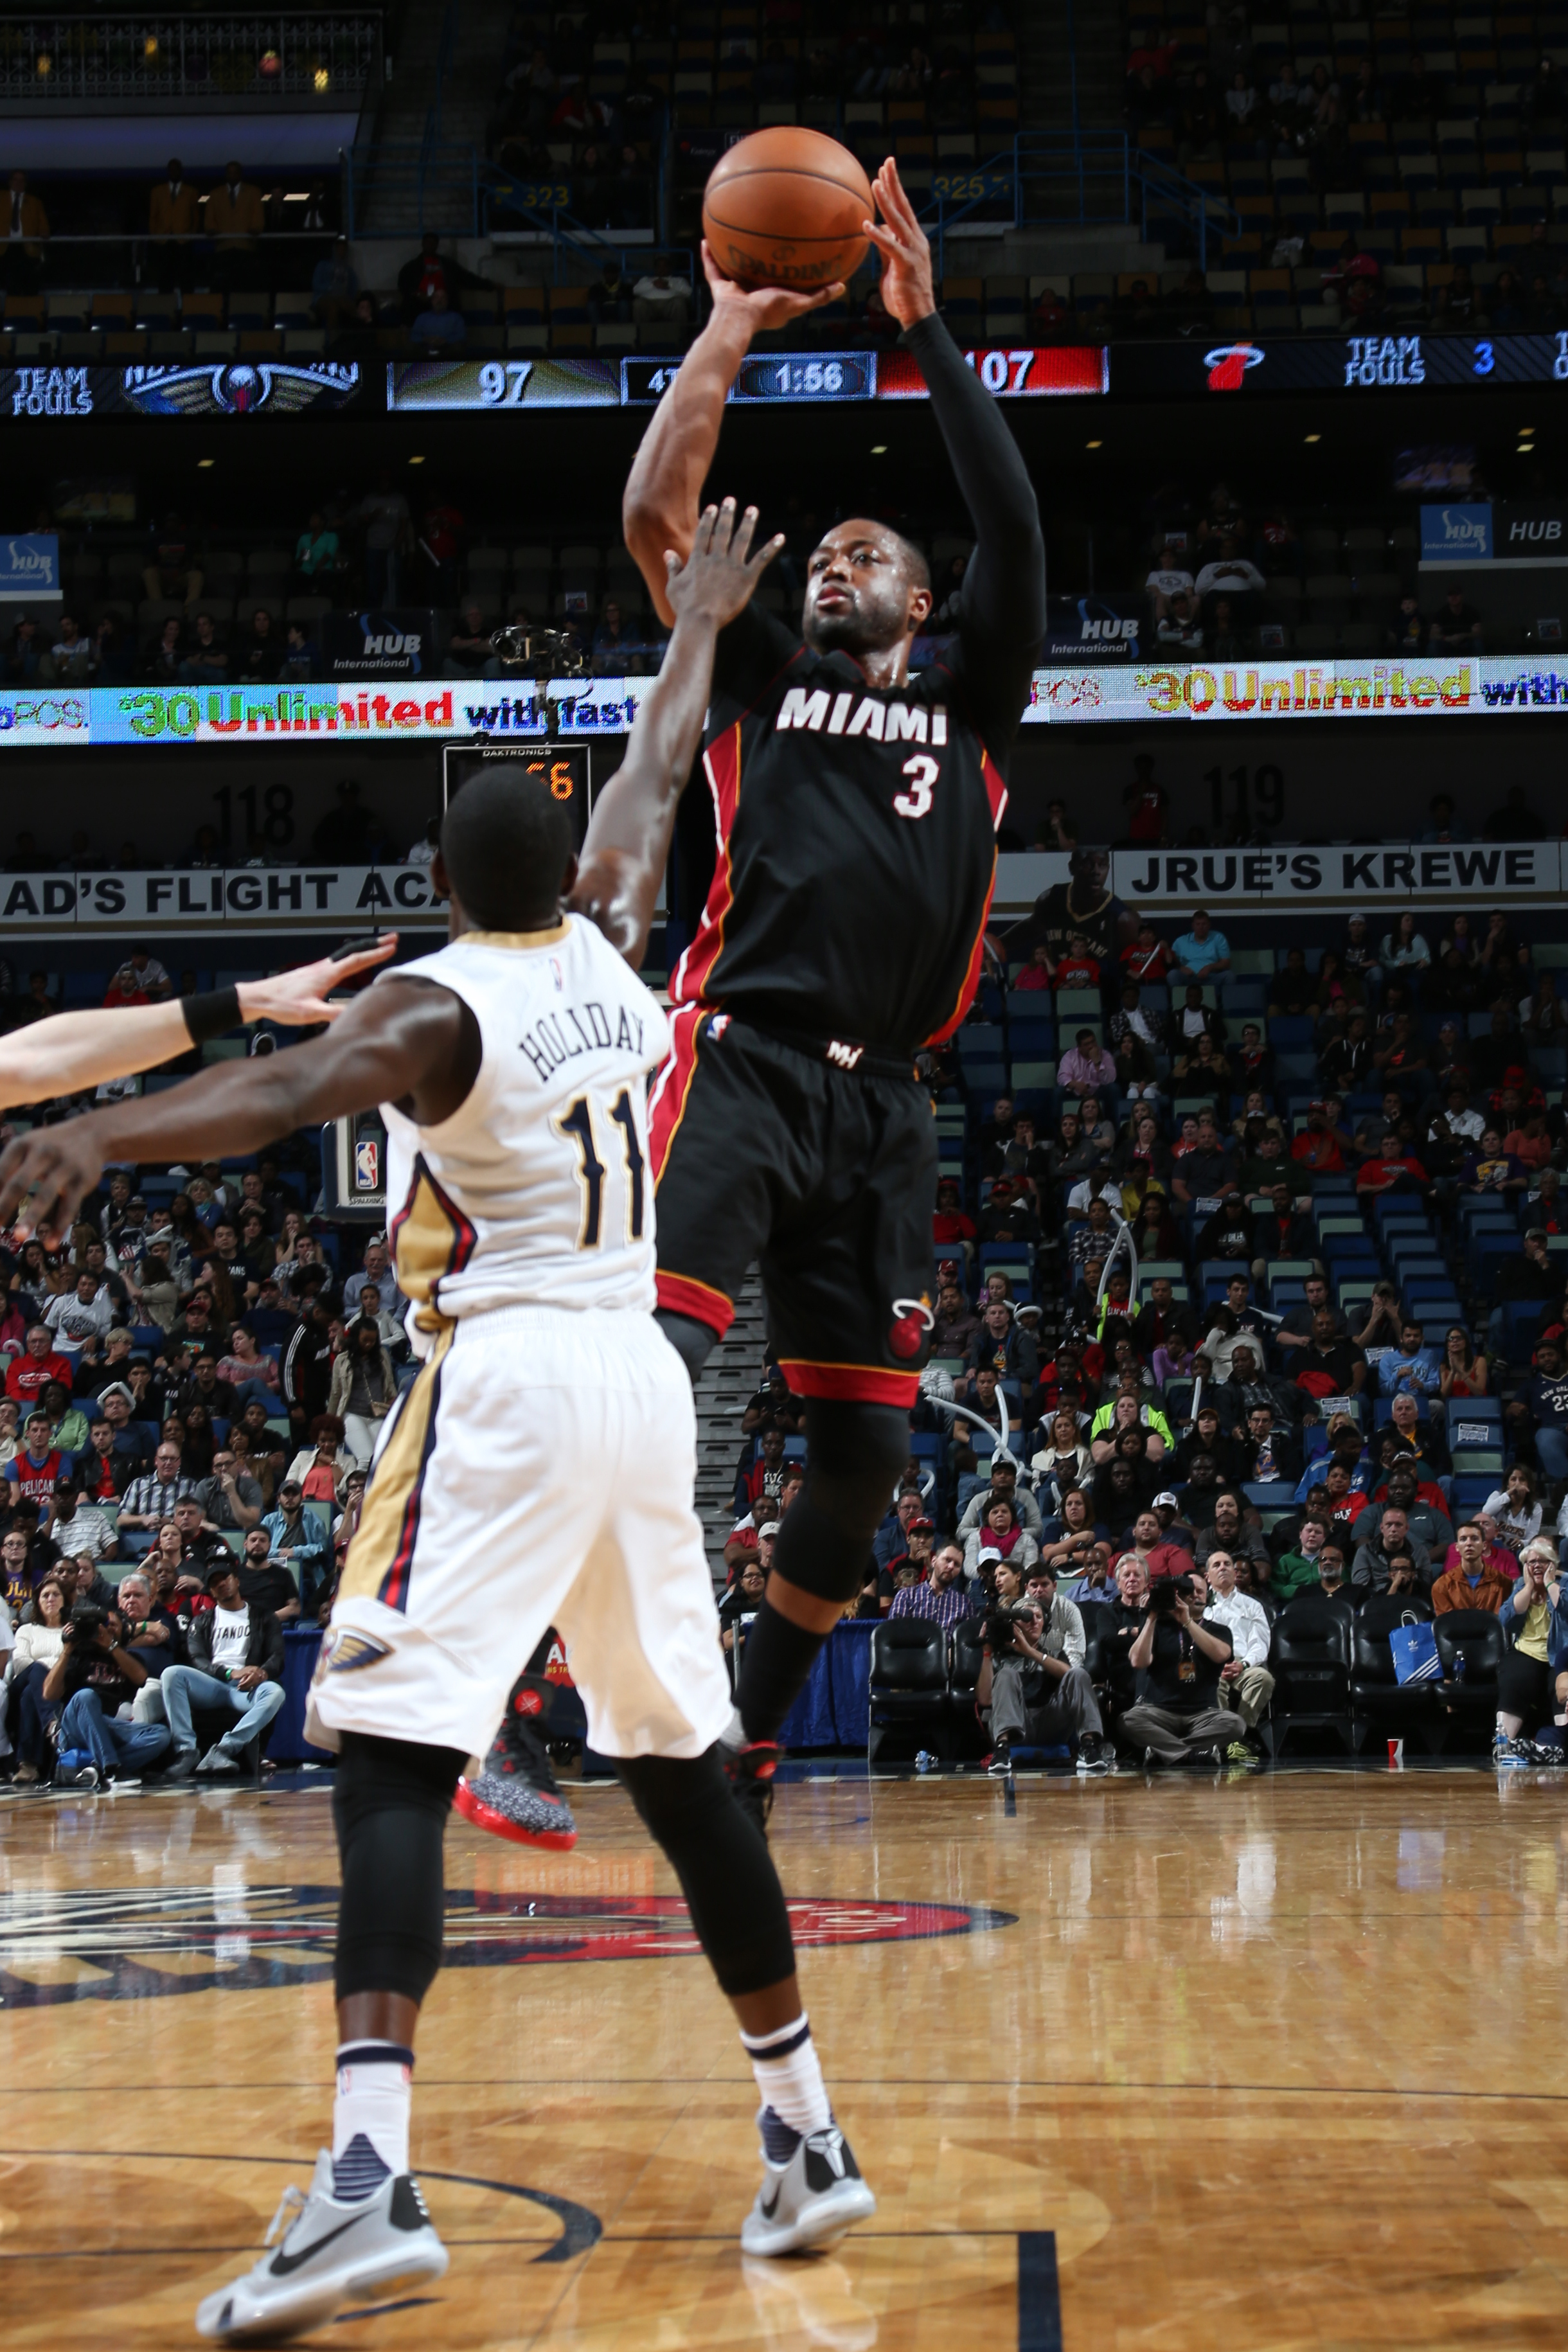 NEW ORLEANS, LA  - MARCH 22: Dwyane Wade #3 of the Miami Heat shoots against the New Orleans Pelicans during the game on March 22, 2016 at Smoothie King Center in New Orleans, Louisiana. (Photo by Layne Murdoch Jr./NBAE via Getty Images)